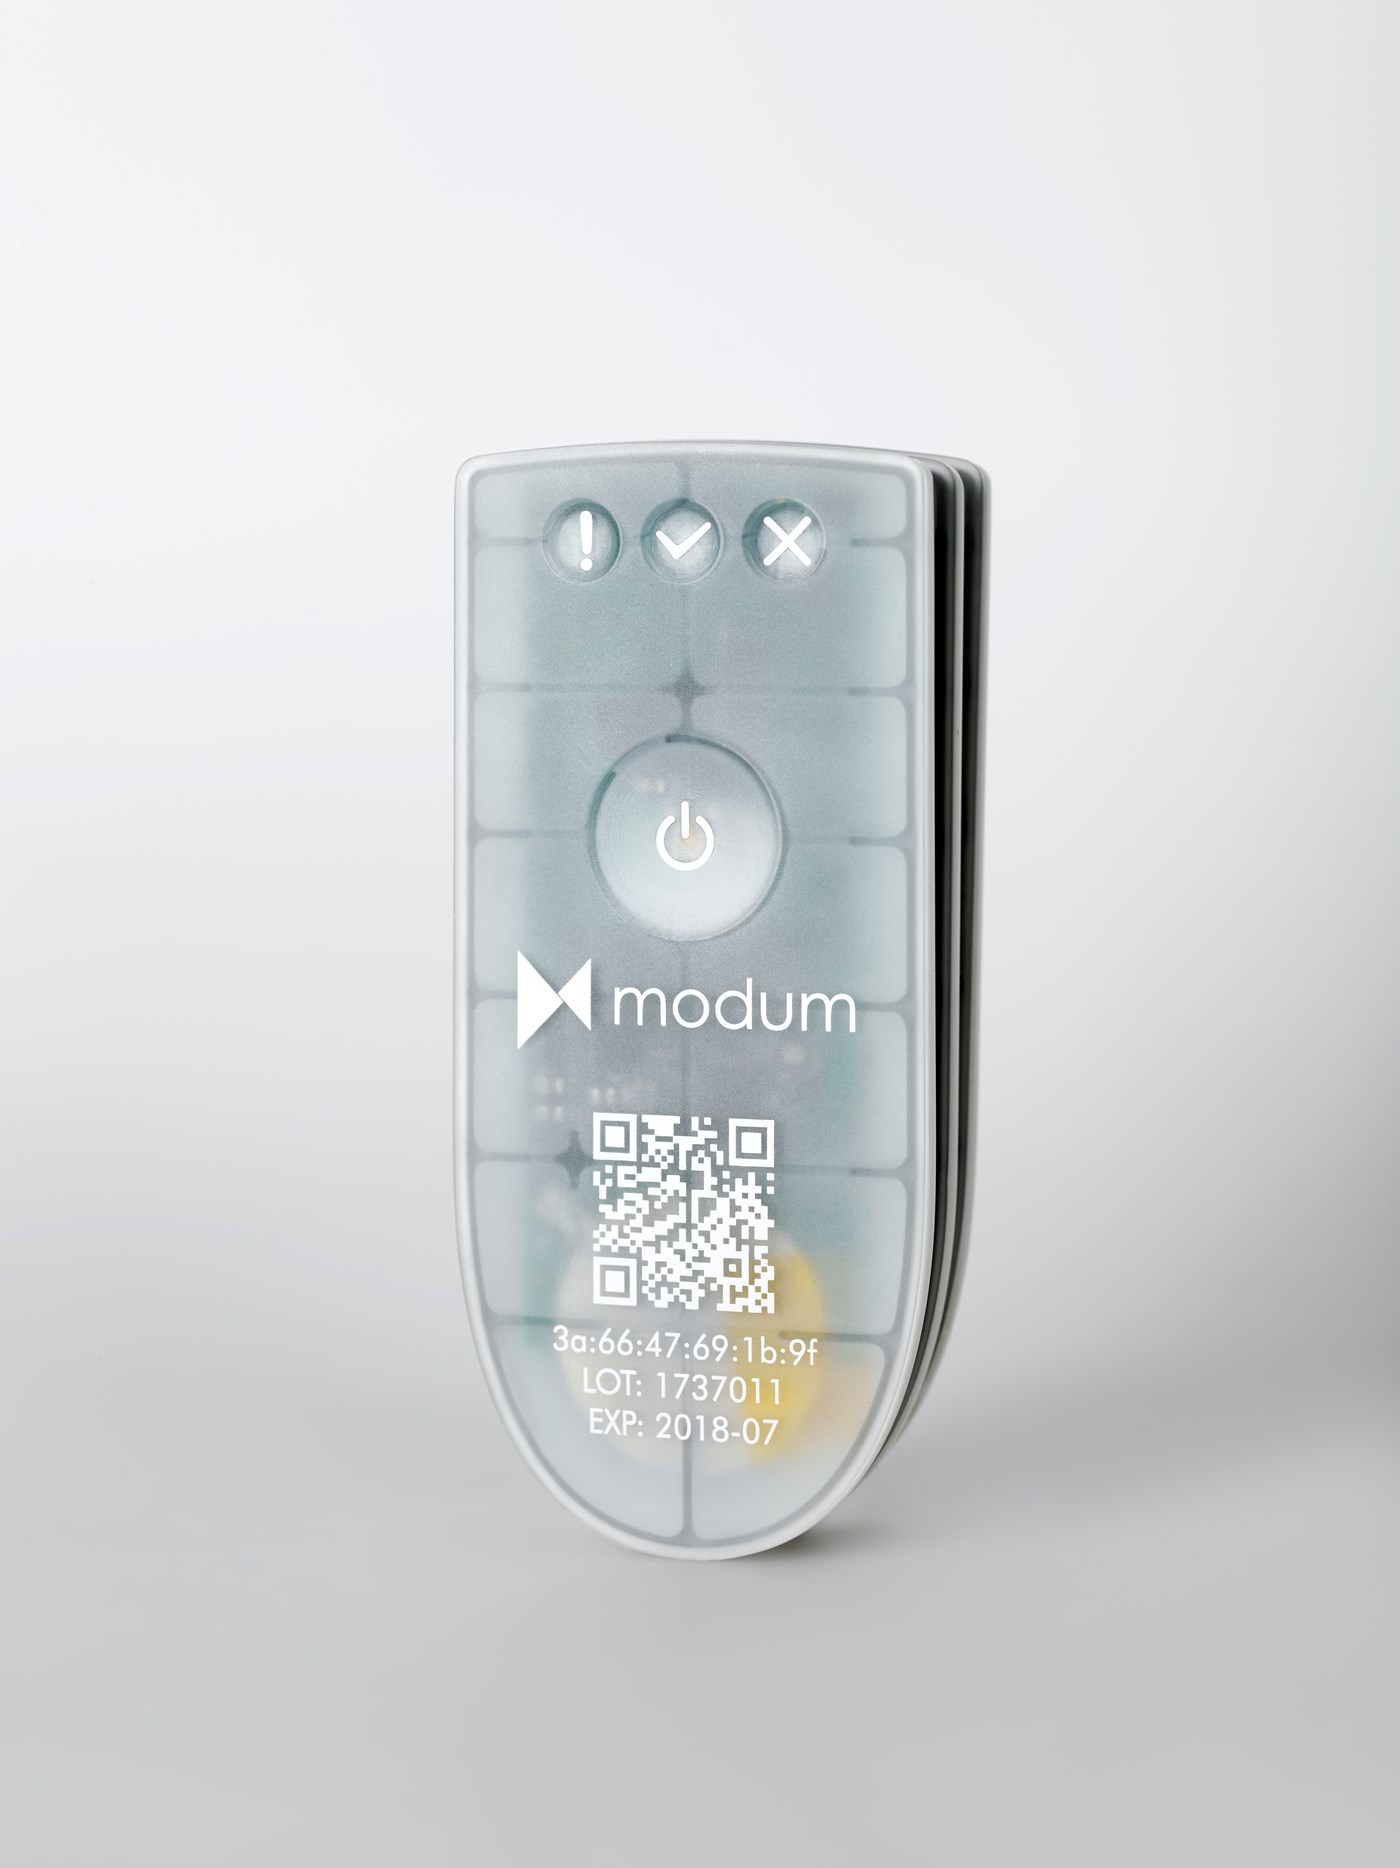 The modum sensor will be released early 2018.